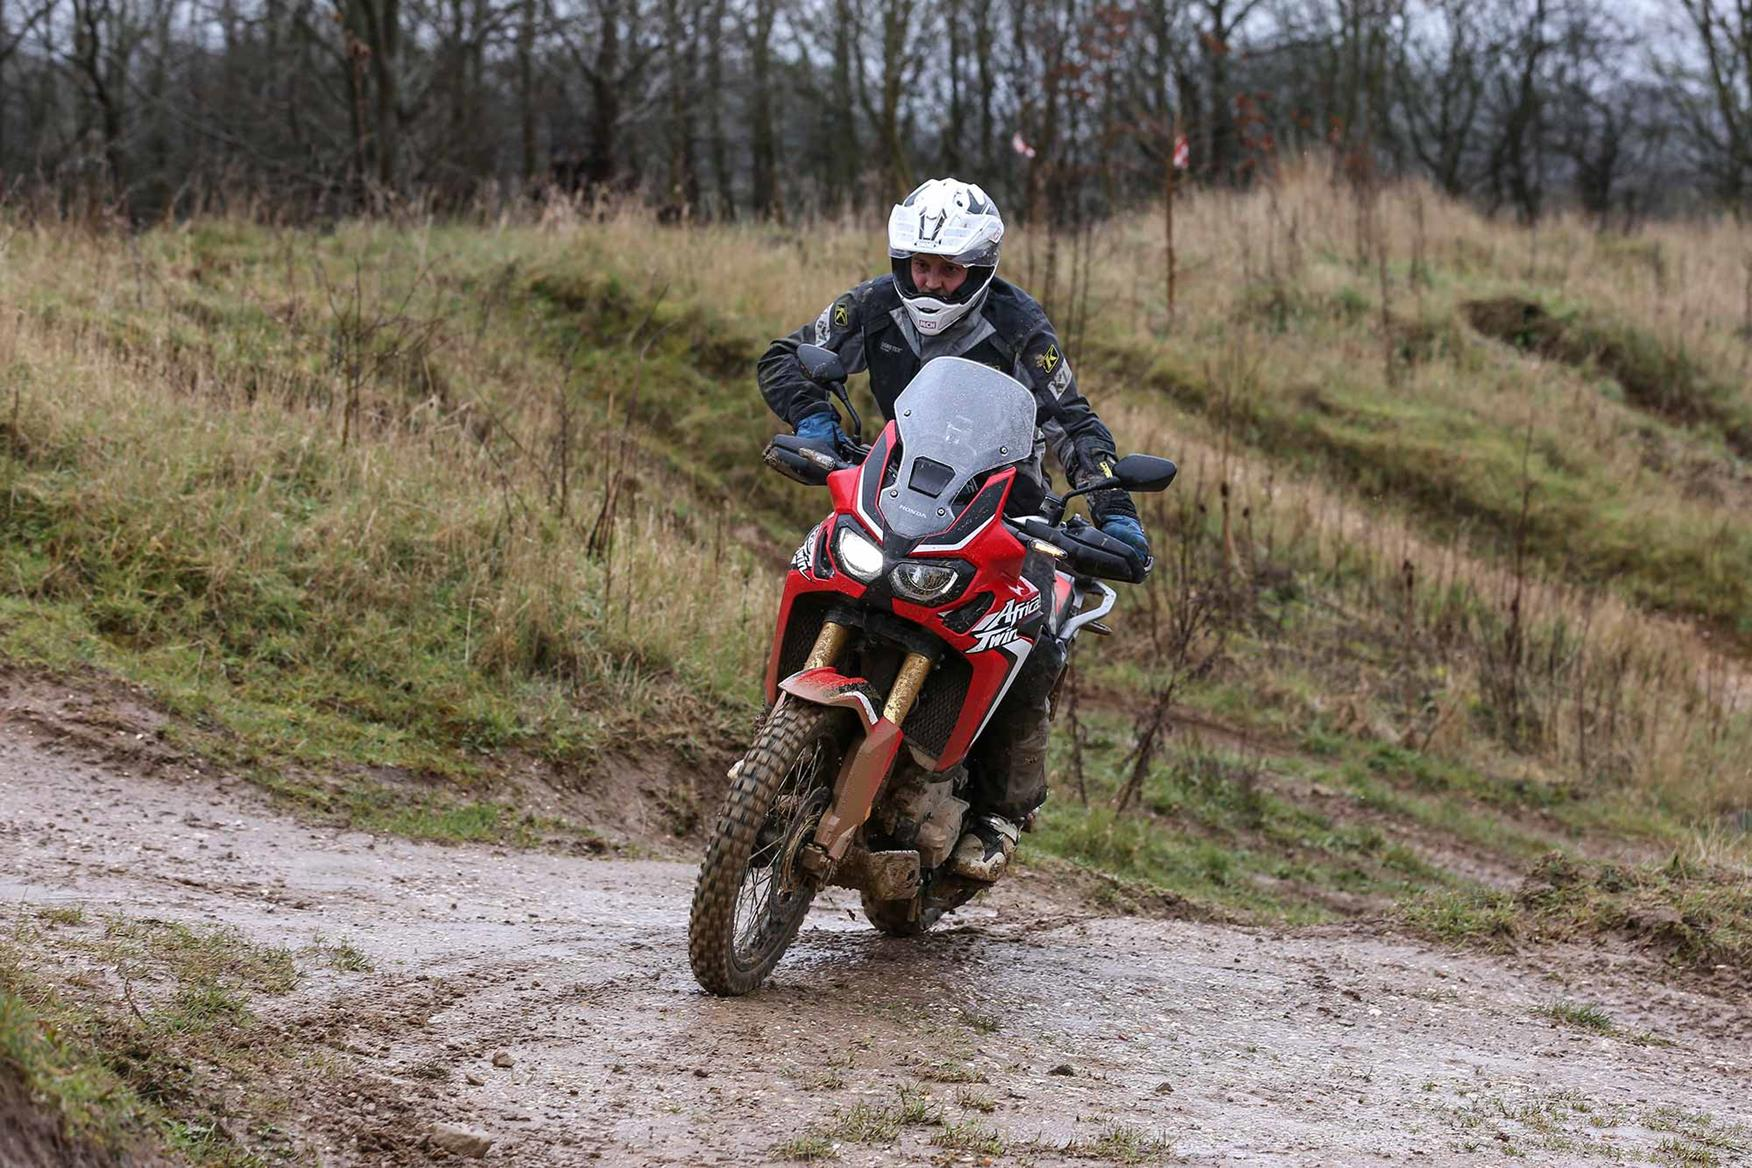 A 2016 CRF1000L DCT Africa Twin in action